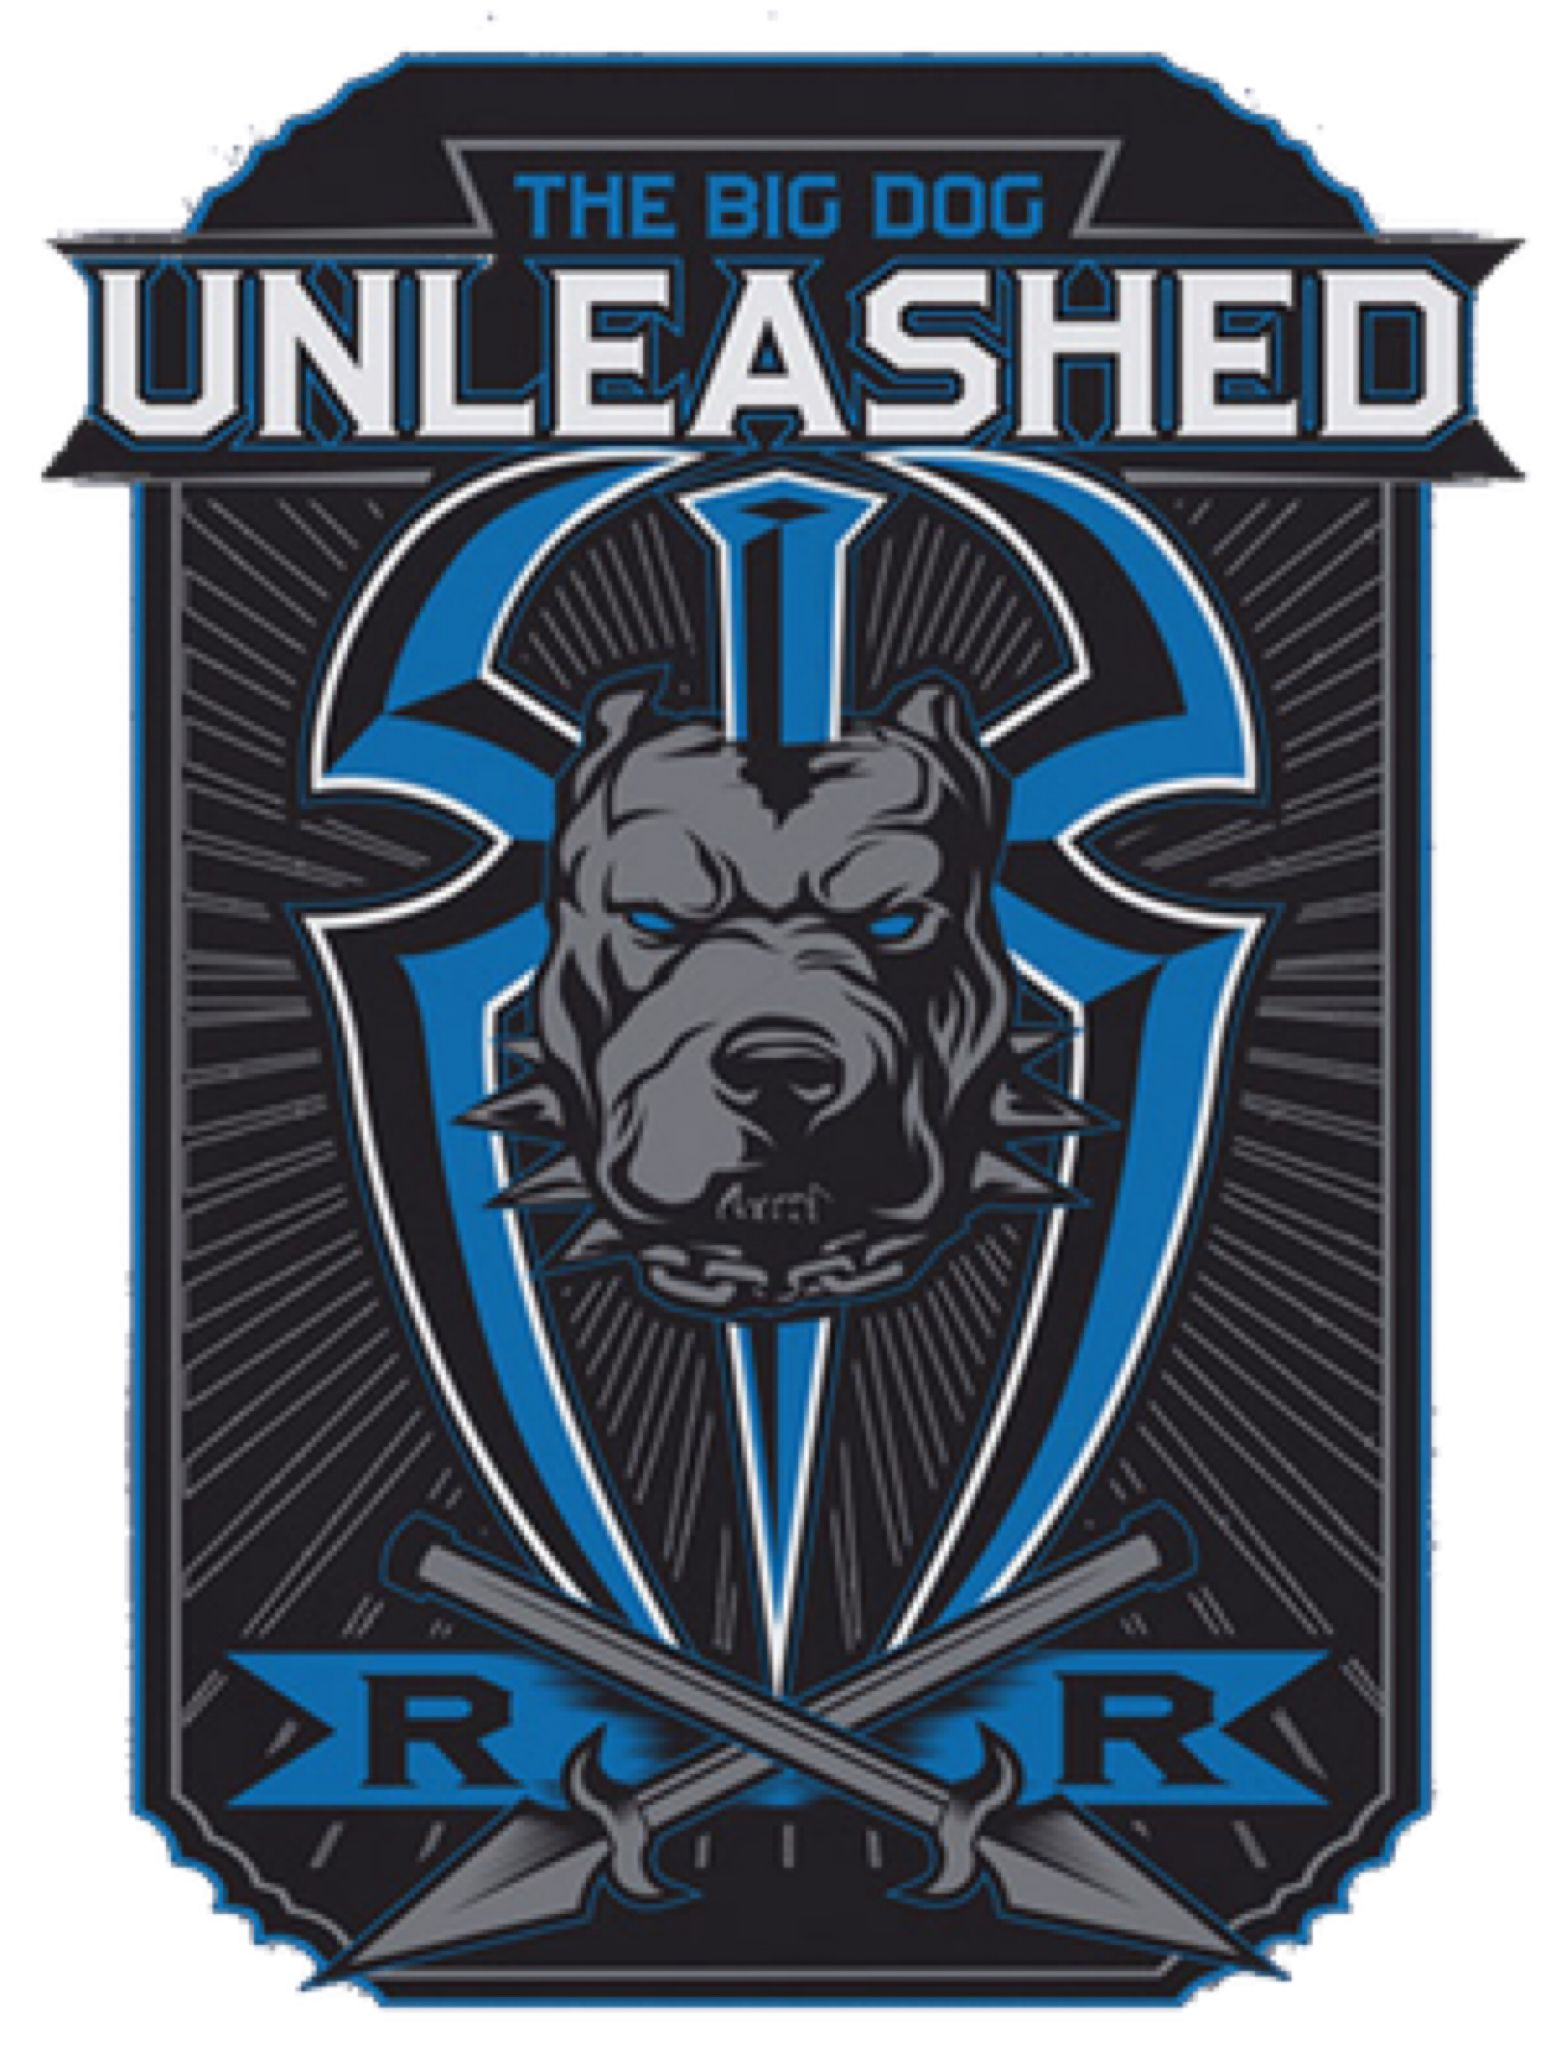 Roman Reigns 'Big Dog Unleashed' 2019 Logo PNG by